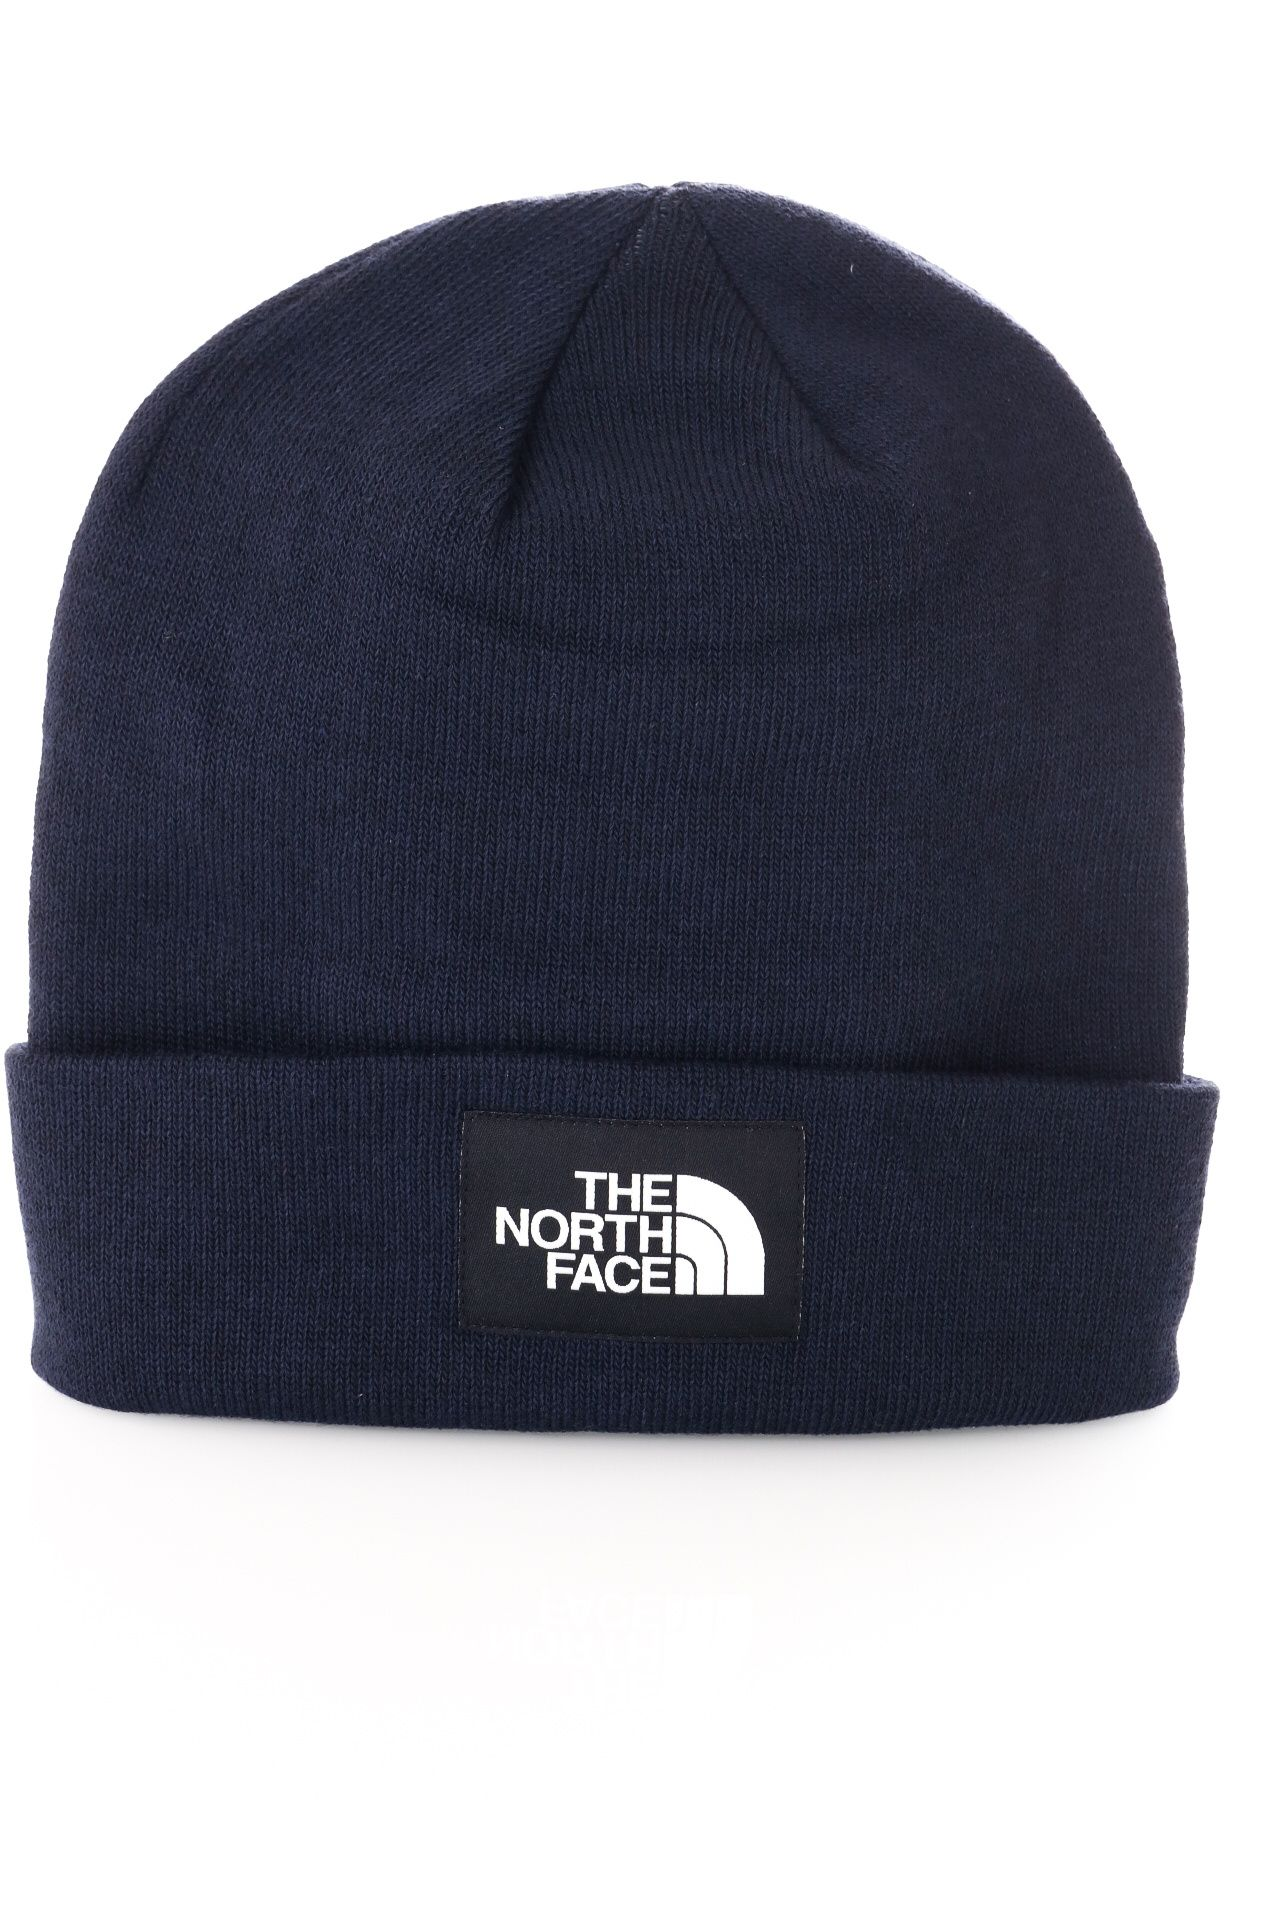 Afbeelding van The North Face Beanie Dock Worker Recycled Beanie Aviator/Navy NF0A3FNTRG11